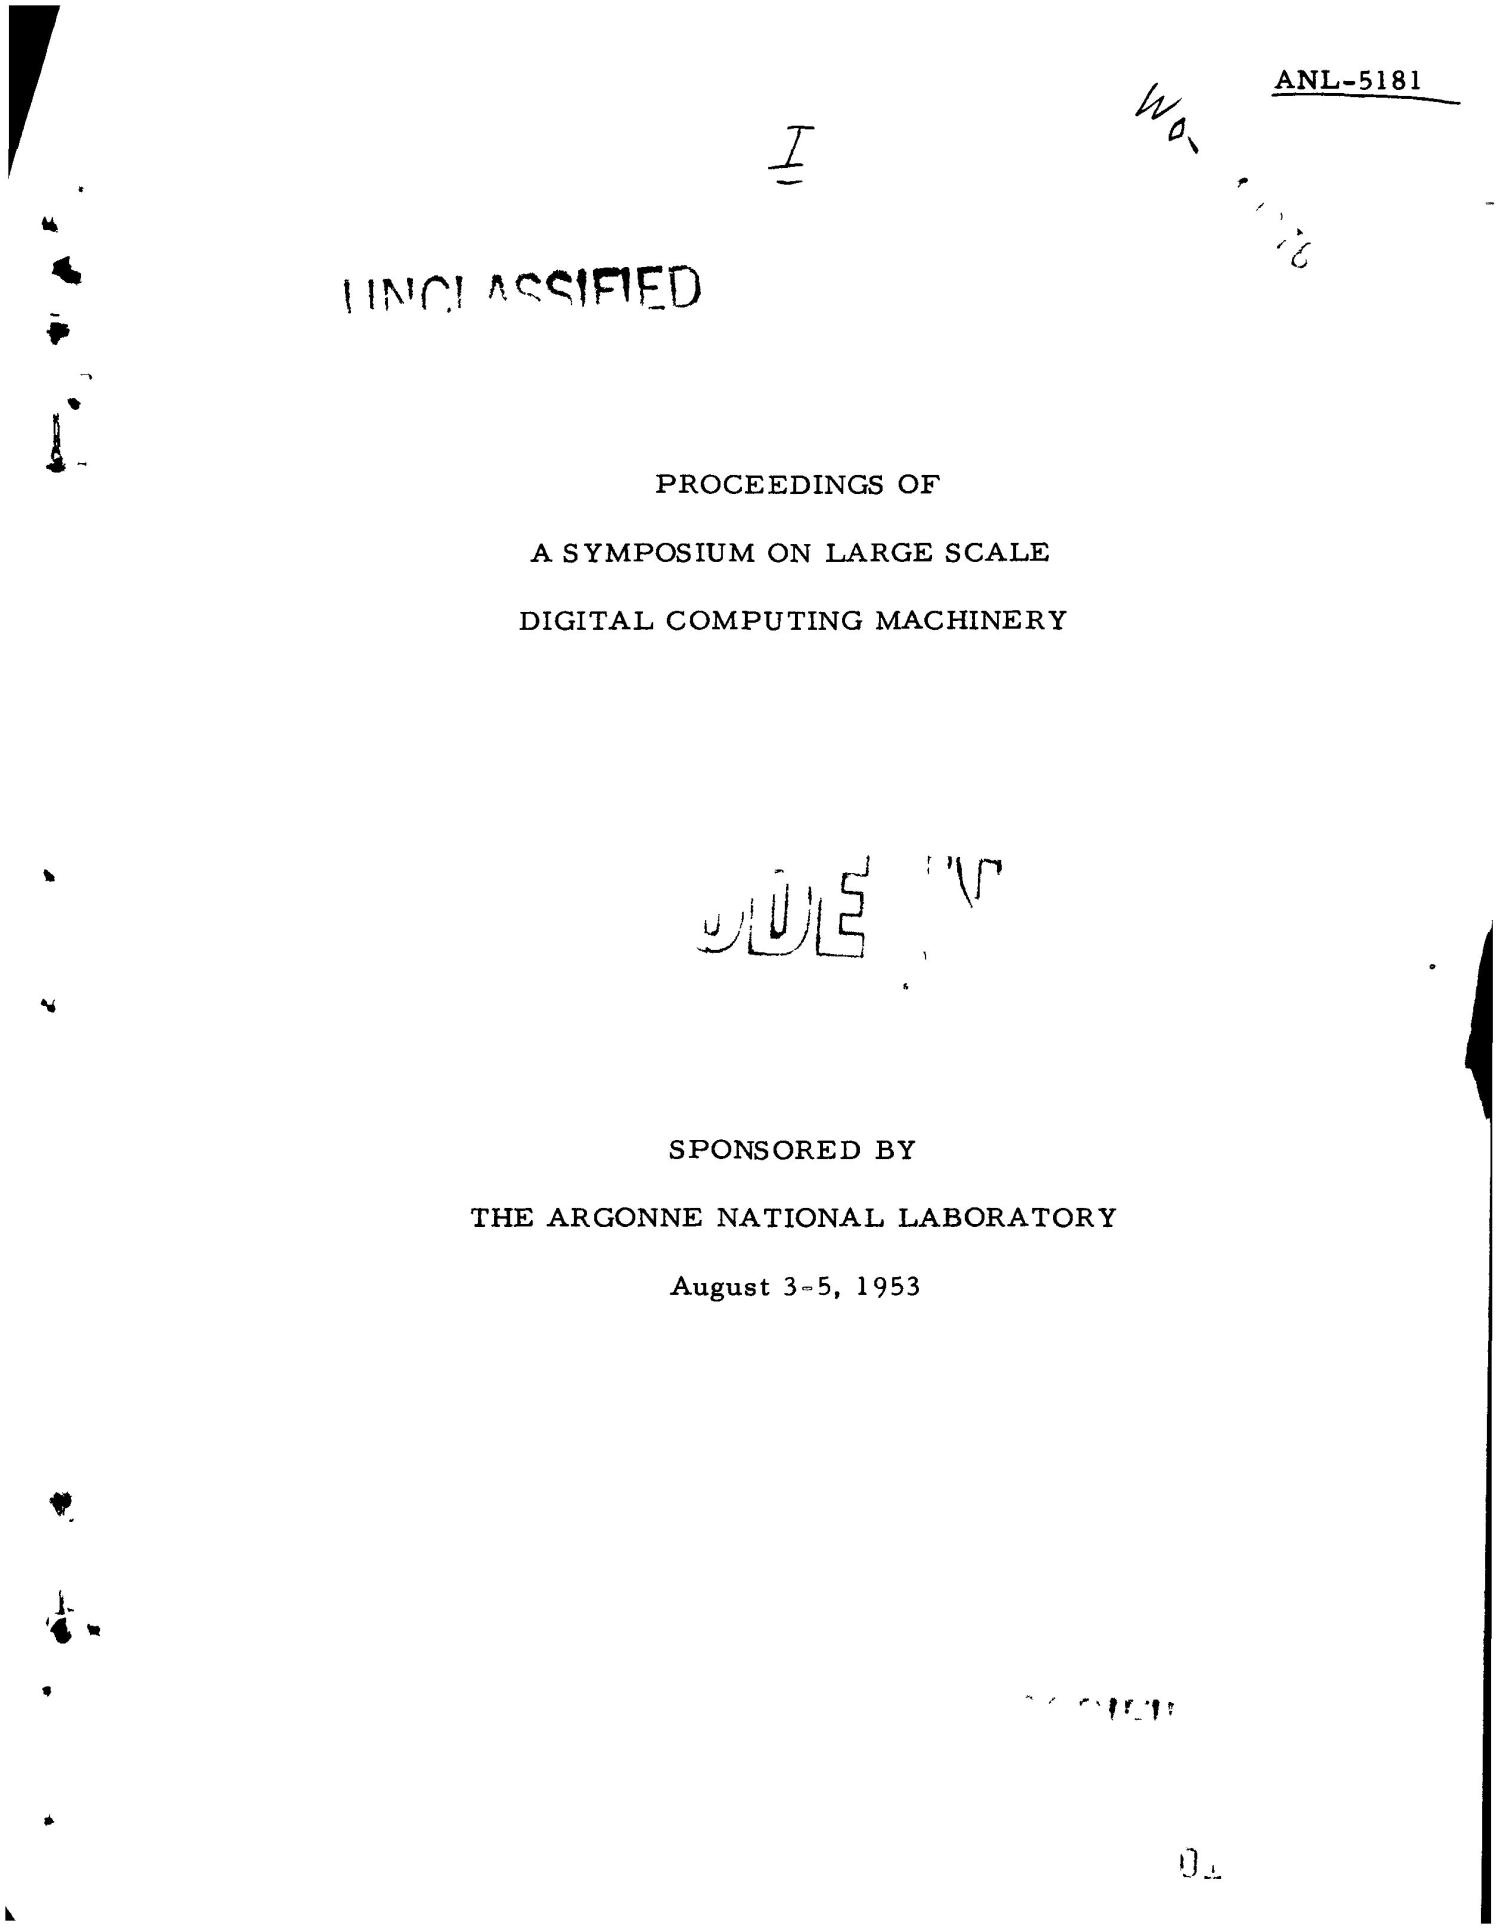 PROCEEDINGS OF A SYMPOSIUM ON LARGE SCALE DIGITAL COMPUTING MACHINERY, AUGUST 3-5, 1953                                                                                                      [Sequence #]: 1 of 319